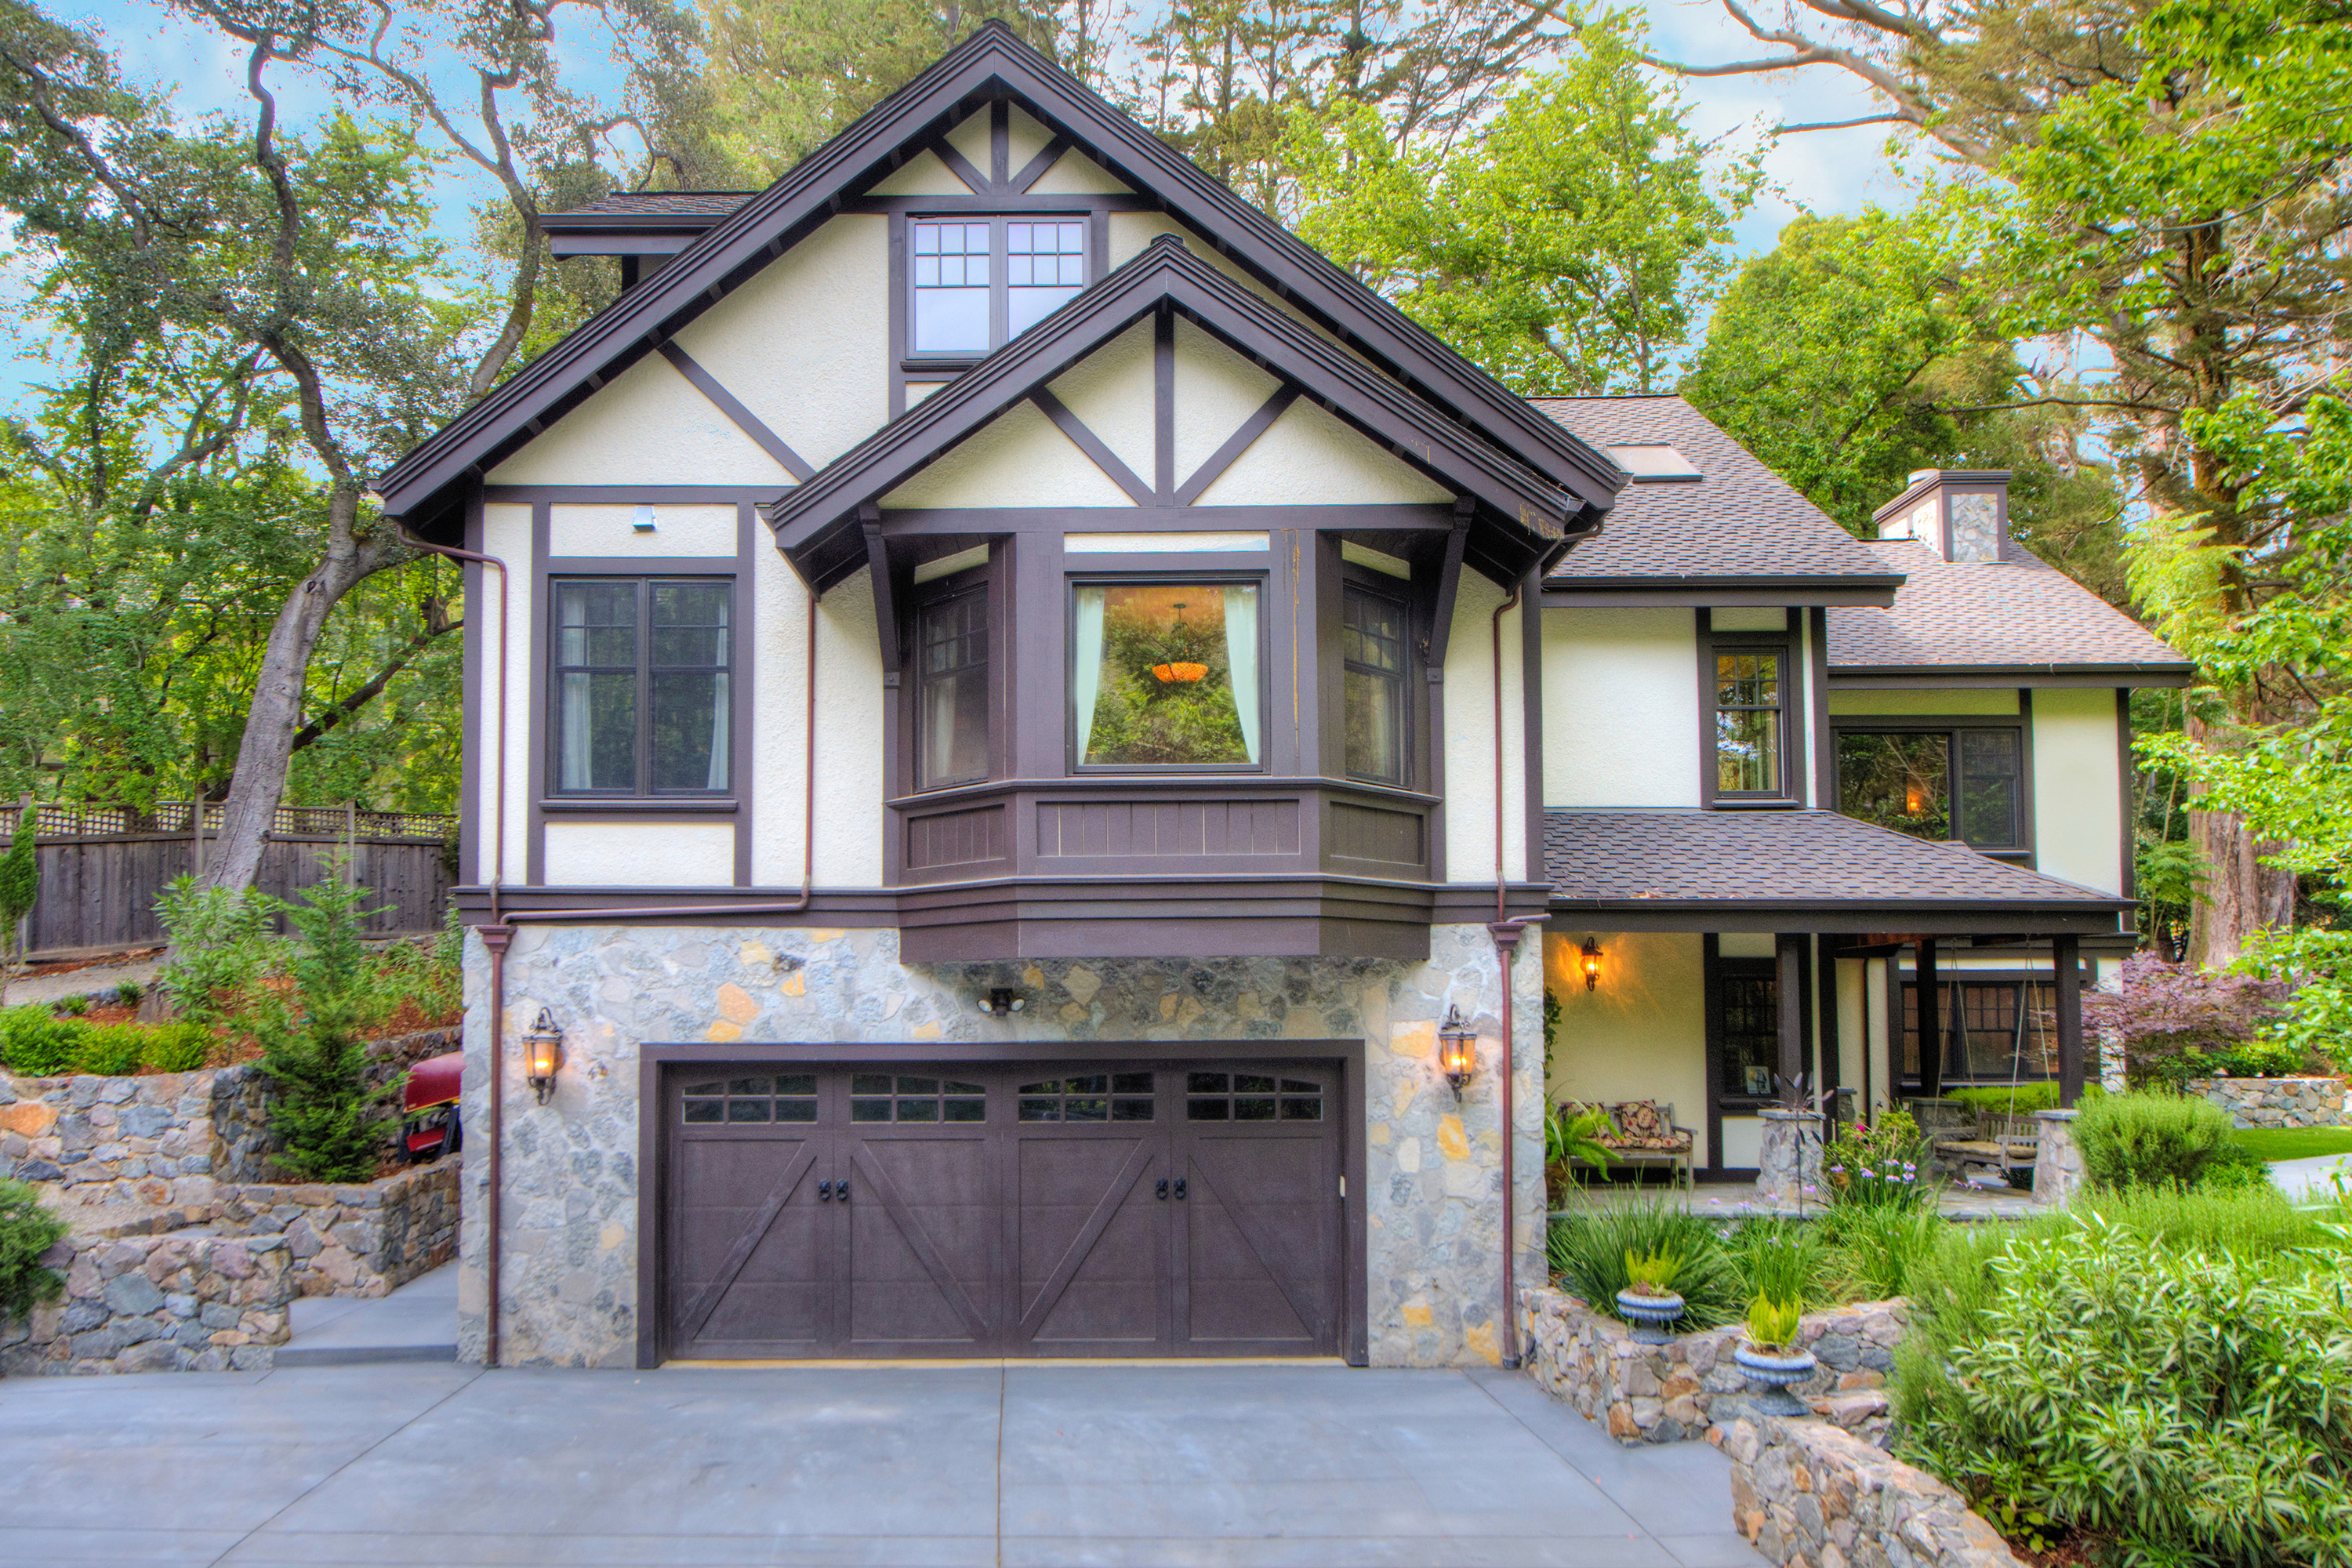 Single Family Home for Sale at Modern-Day Heritage 1 Cornwall Street Mill Valley, California 94941 United States